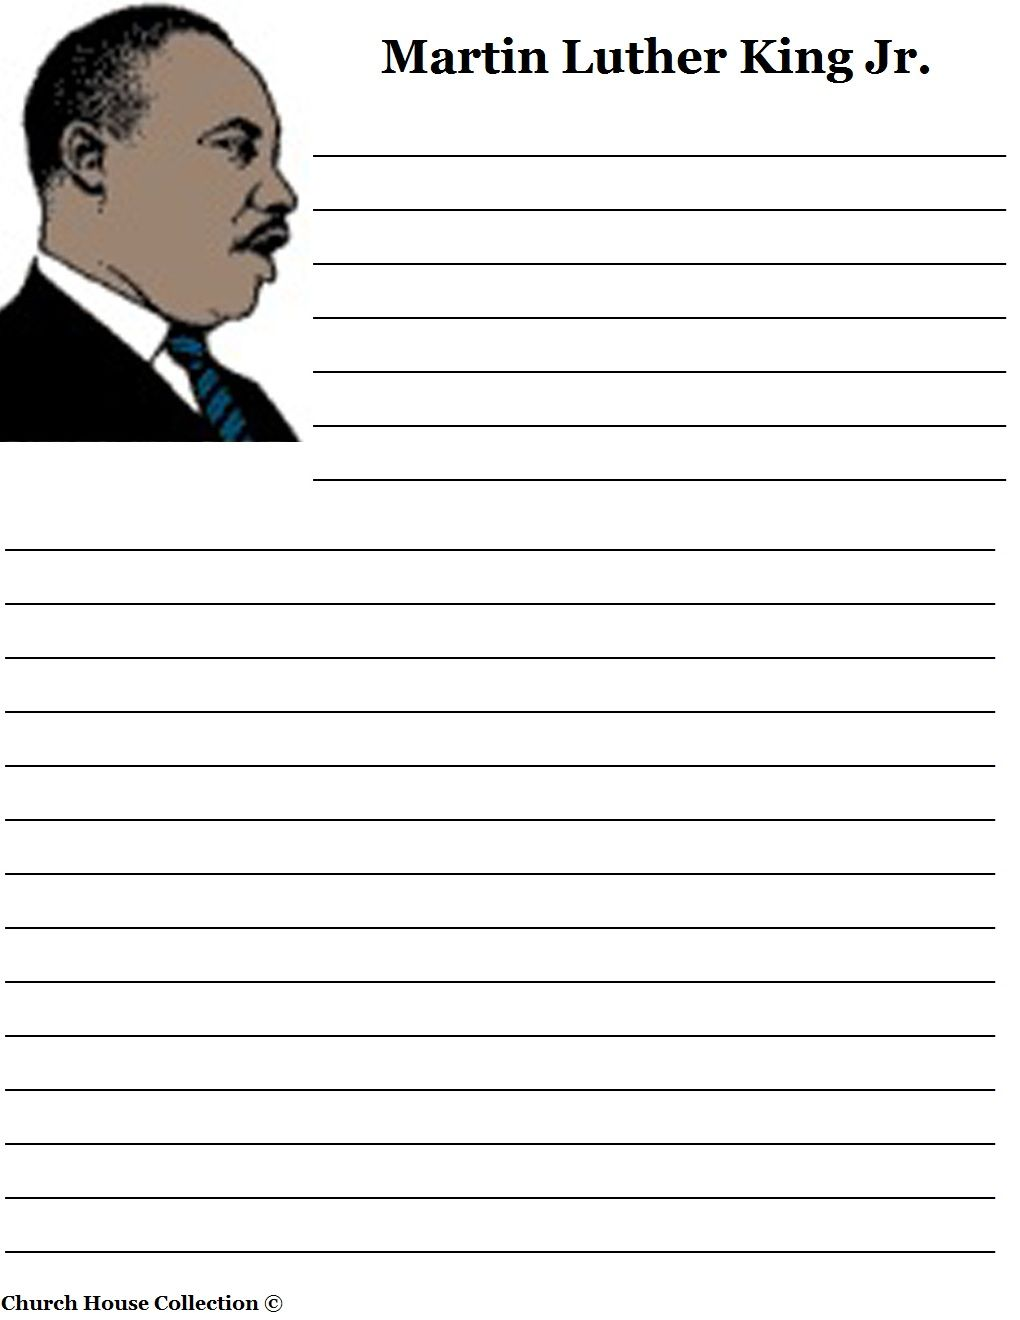 Free printable coloring pages dr martin luther king jr - Martin Luther King Jr Writing Paper